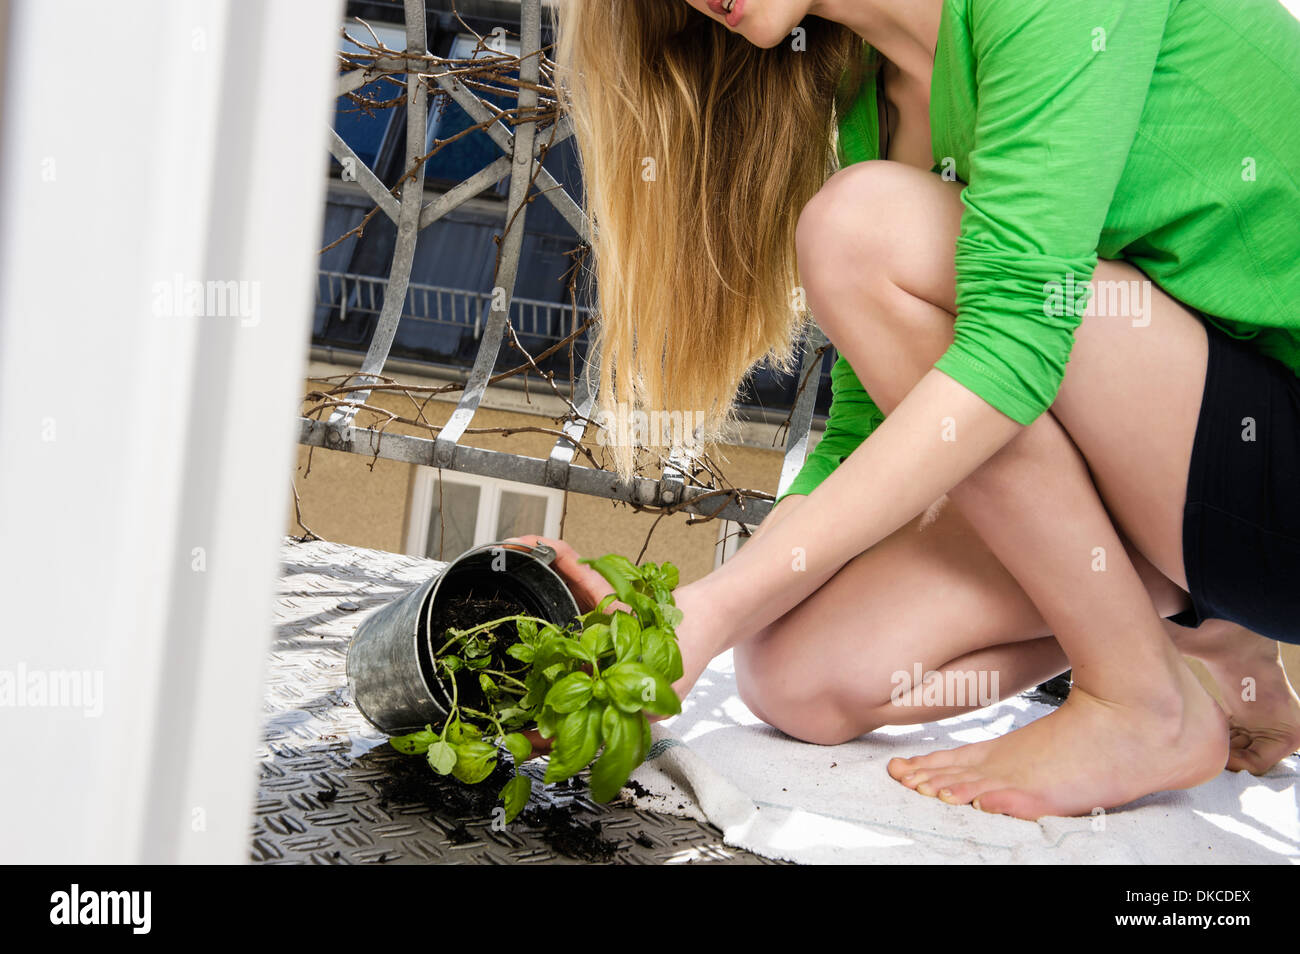 Teenage girl cleaning up pot plant on floor - Stock Image